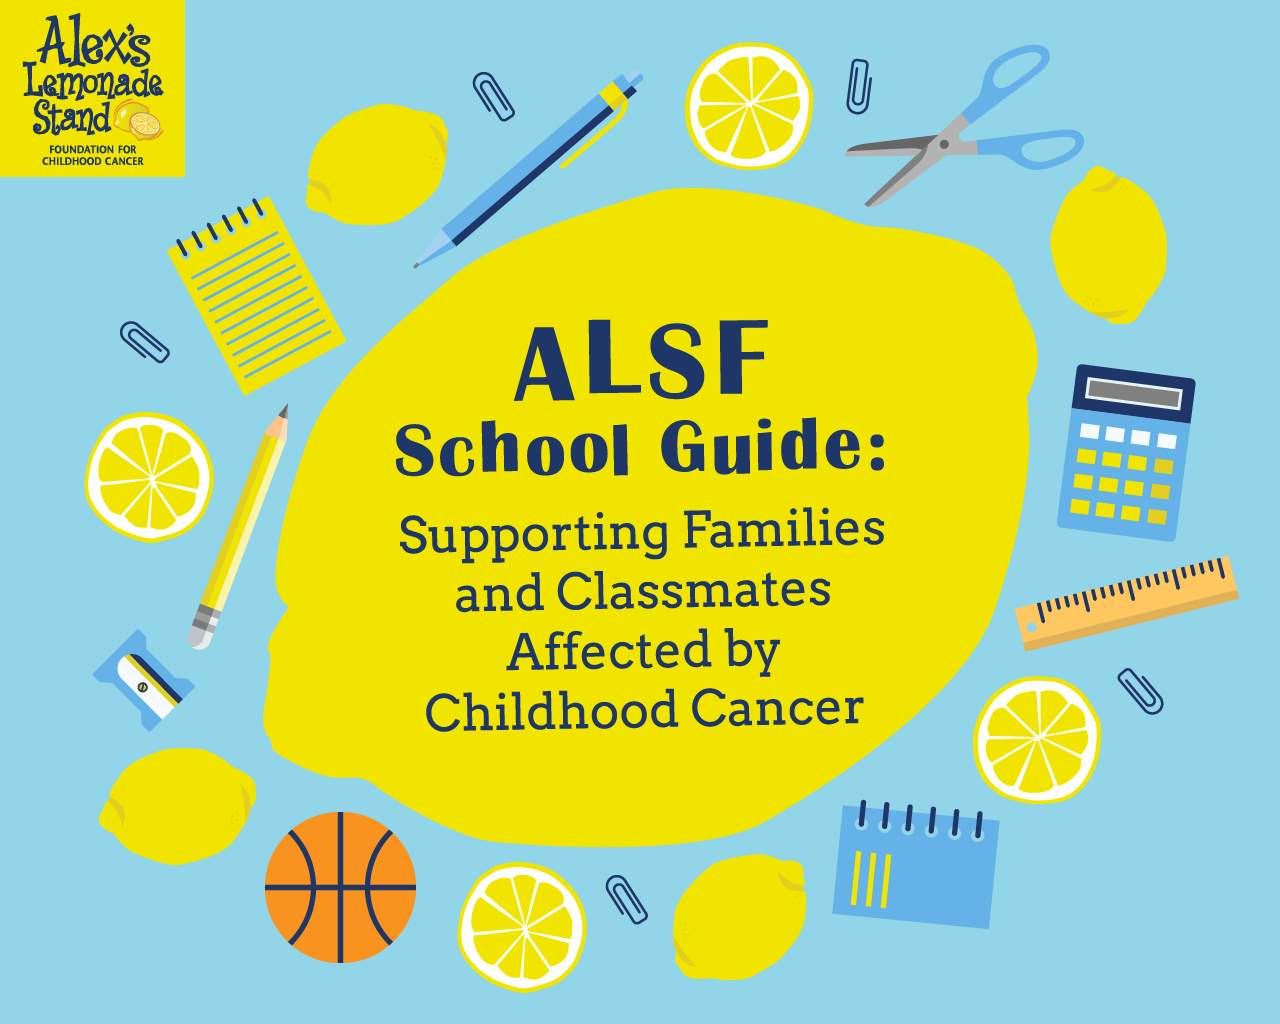 ALSF School Guide: Supporting Families and Classmates Affected by Childhood Cancer